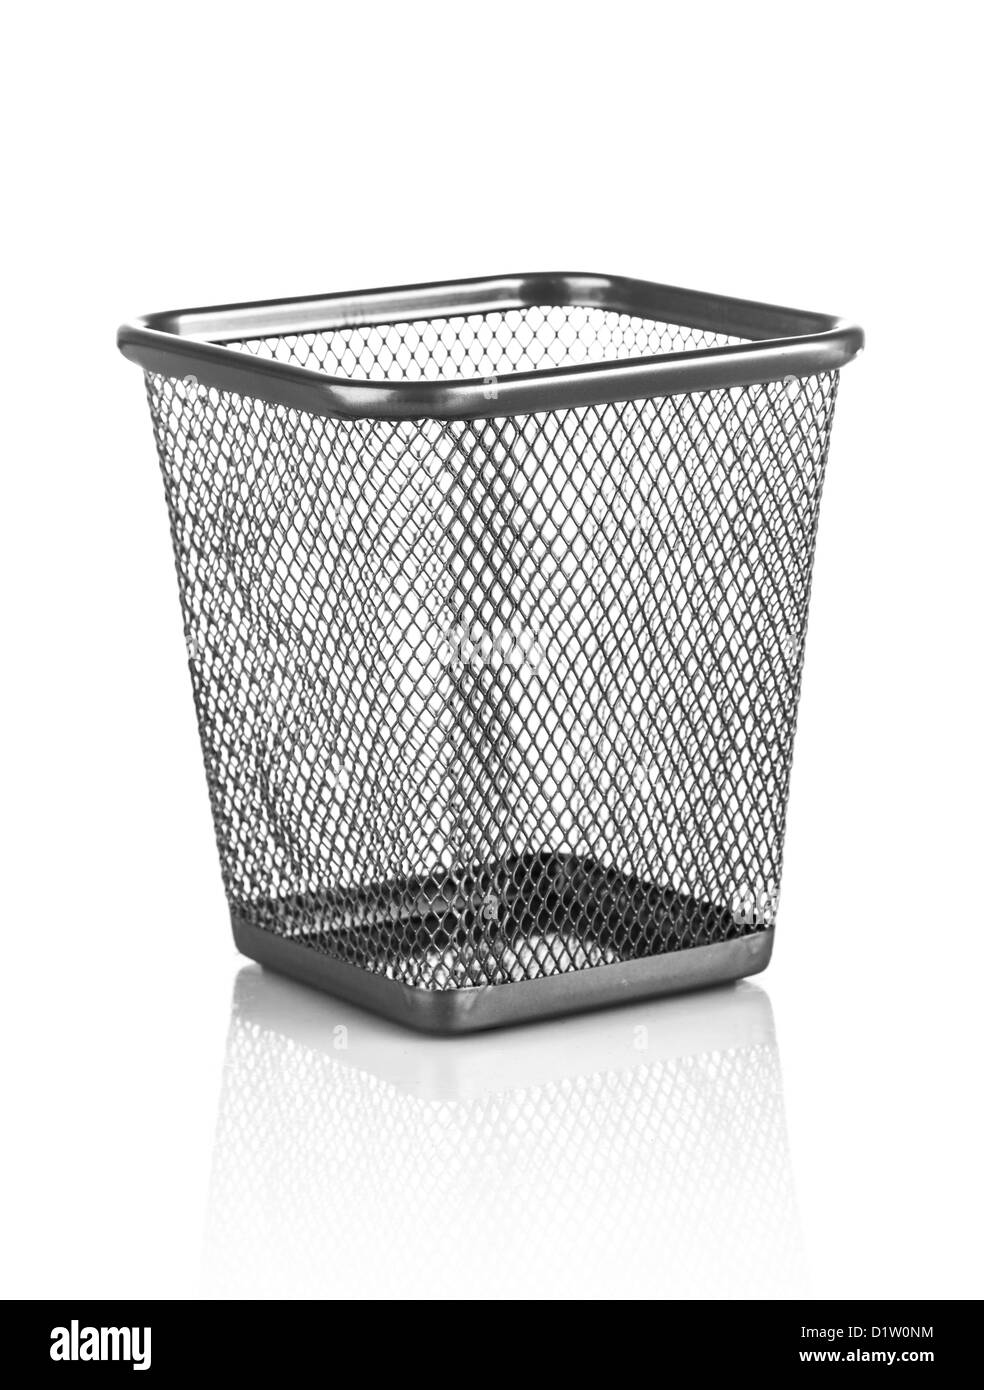 empty metal trashcan on a white - Stock Image